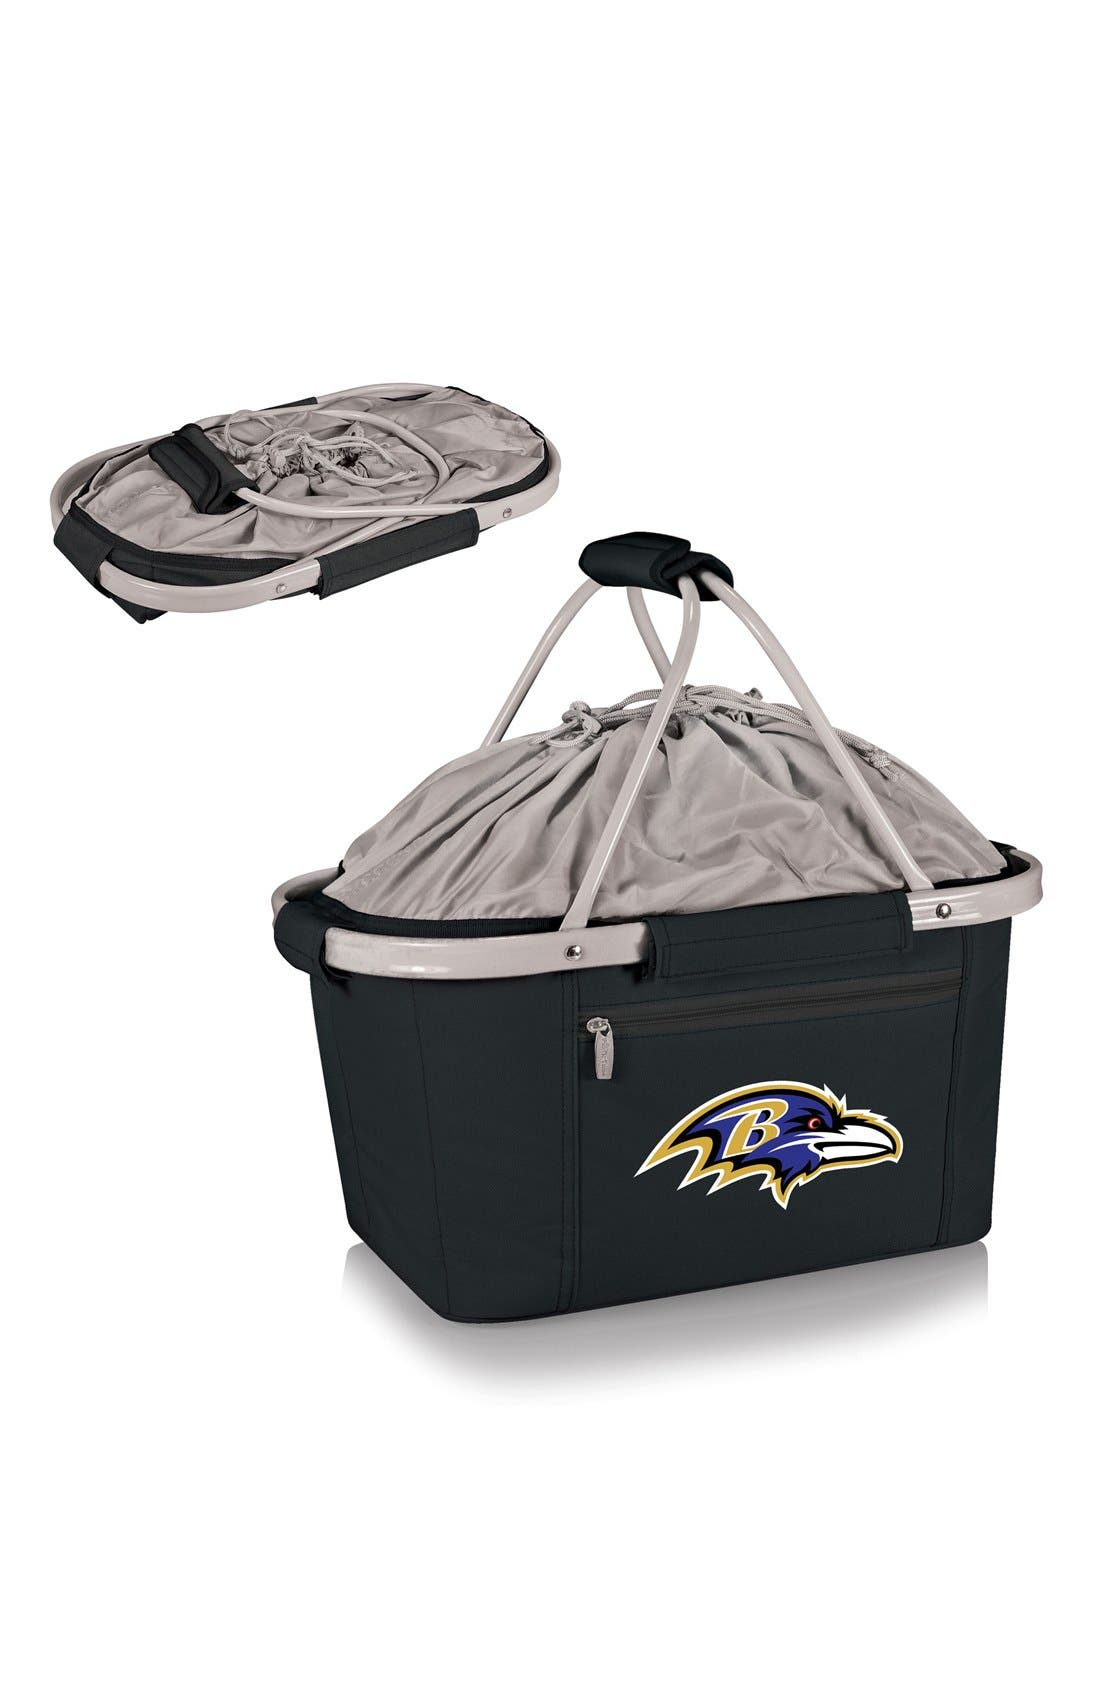 Alternate Image 2  - Picnic Time Metro NFL Collapsible Insulated Basket